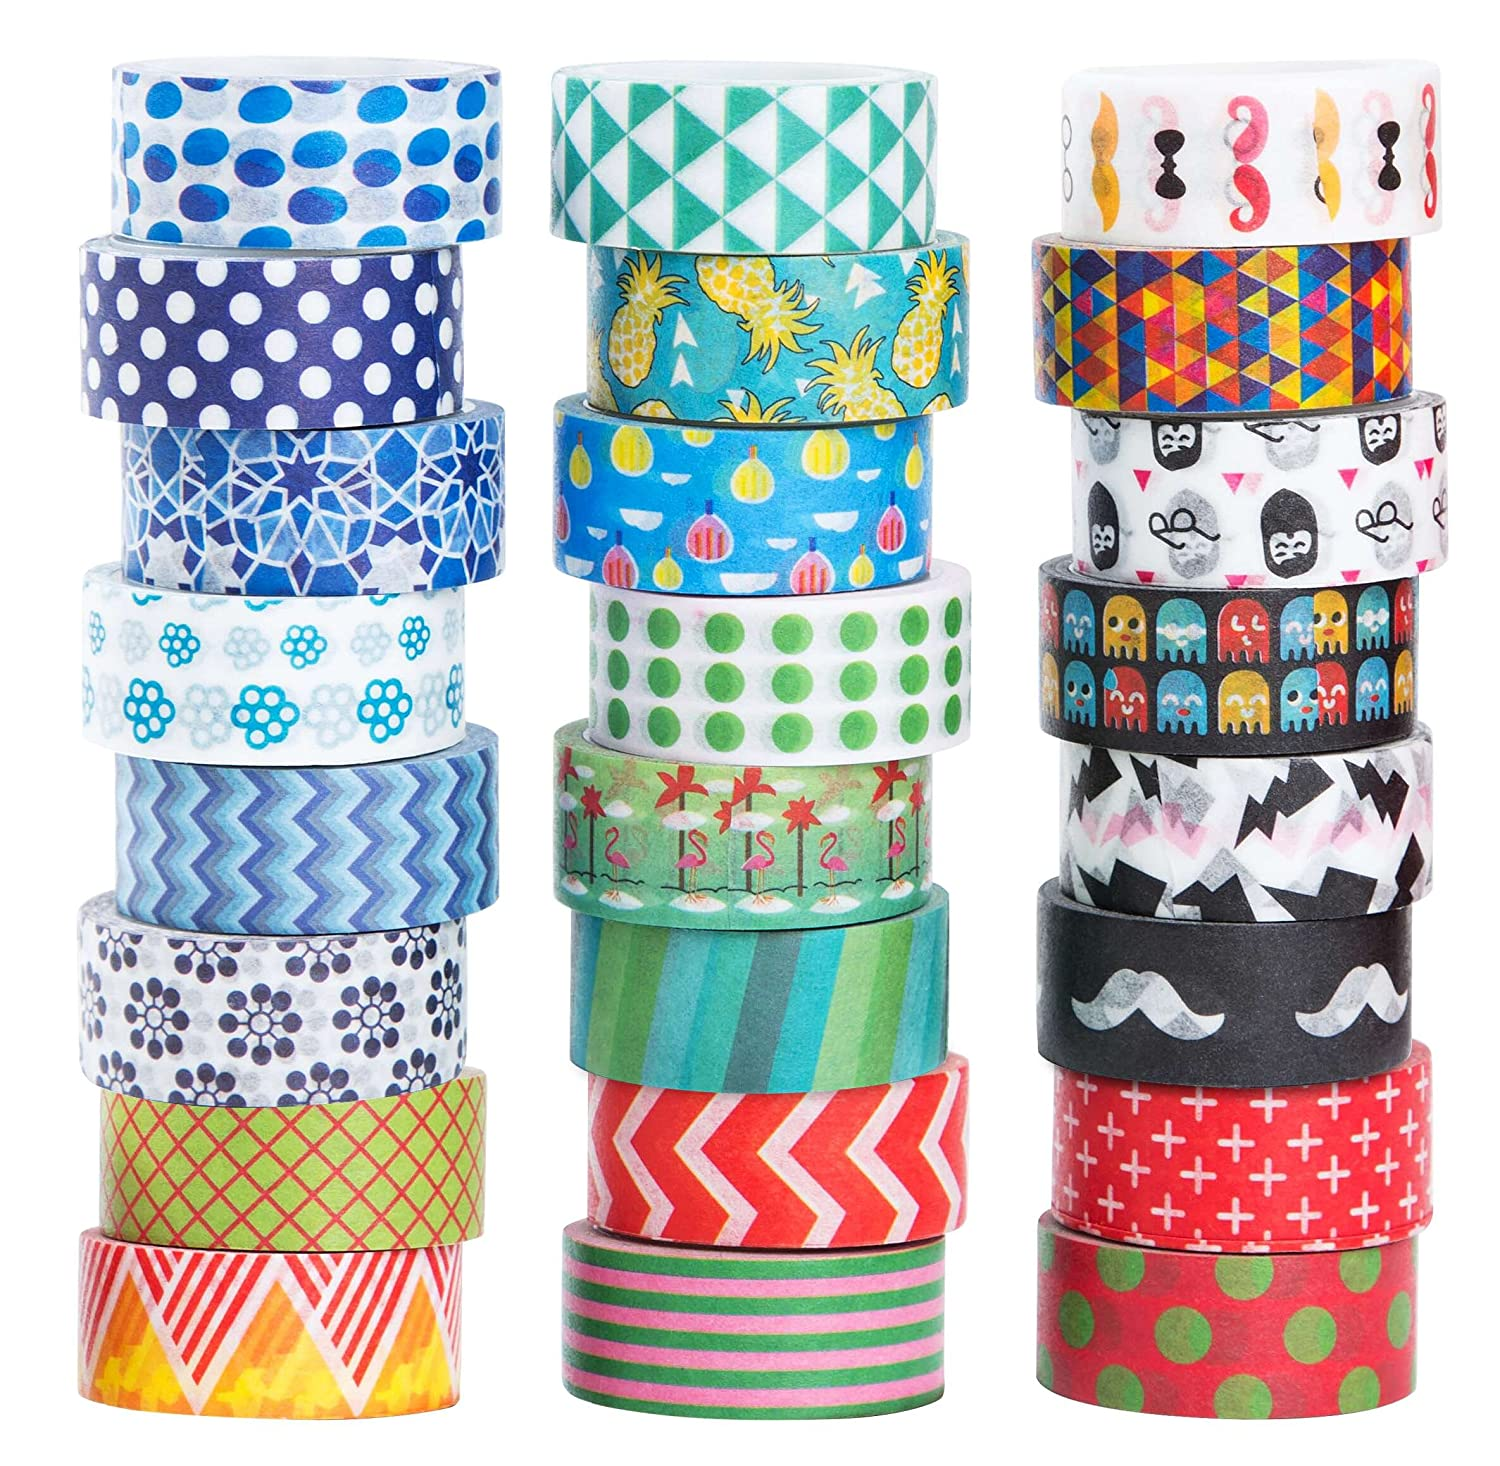 24 Rolls Washi Masking Tape Set, Decorative Craft Tape Collection for DIY and Gift Wrapping, by Mooker Youngmer 4336846991